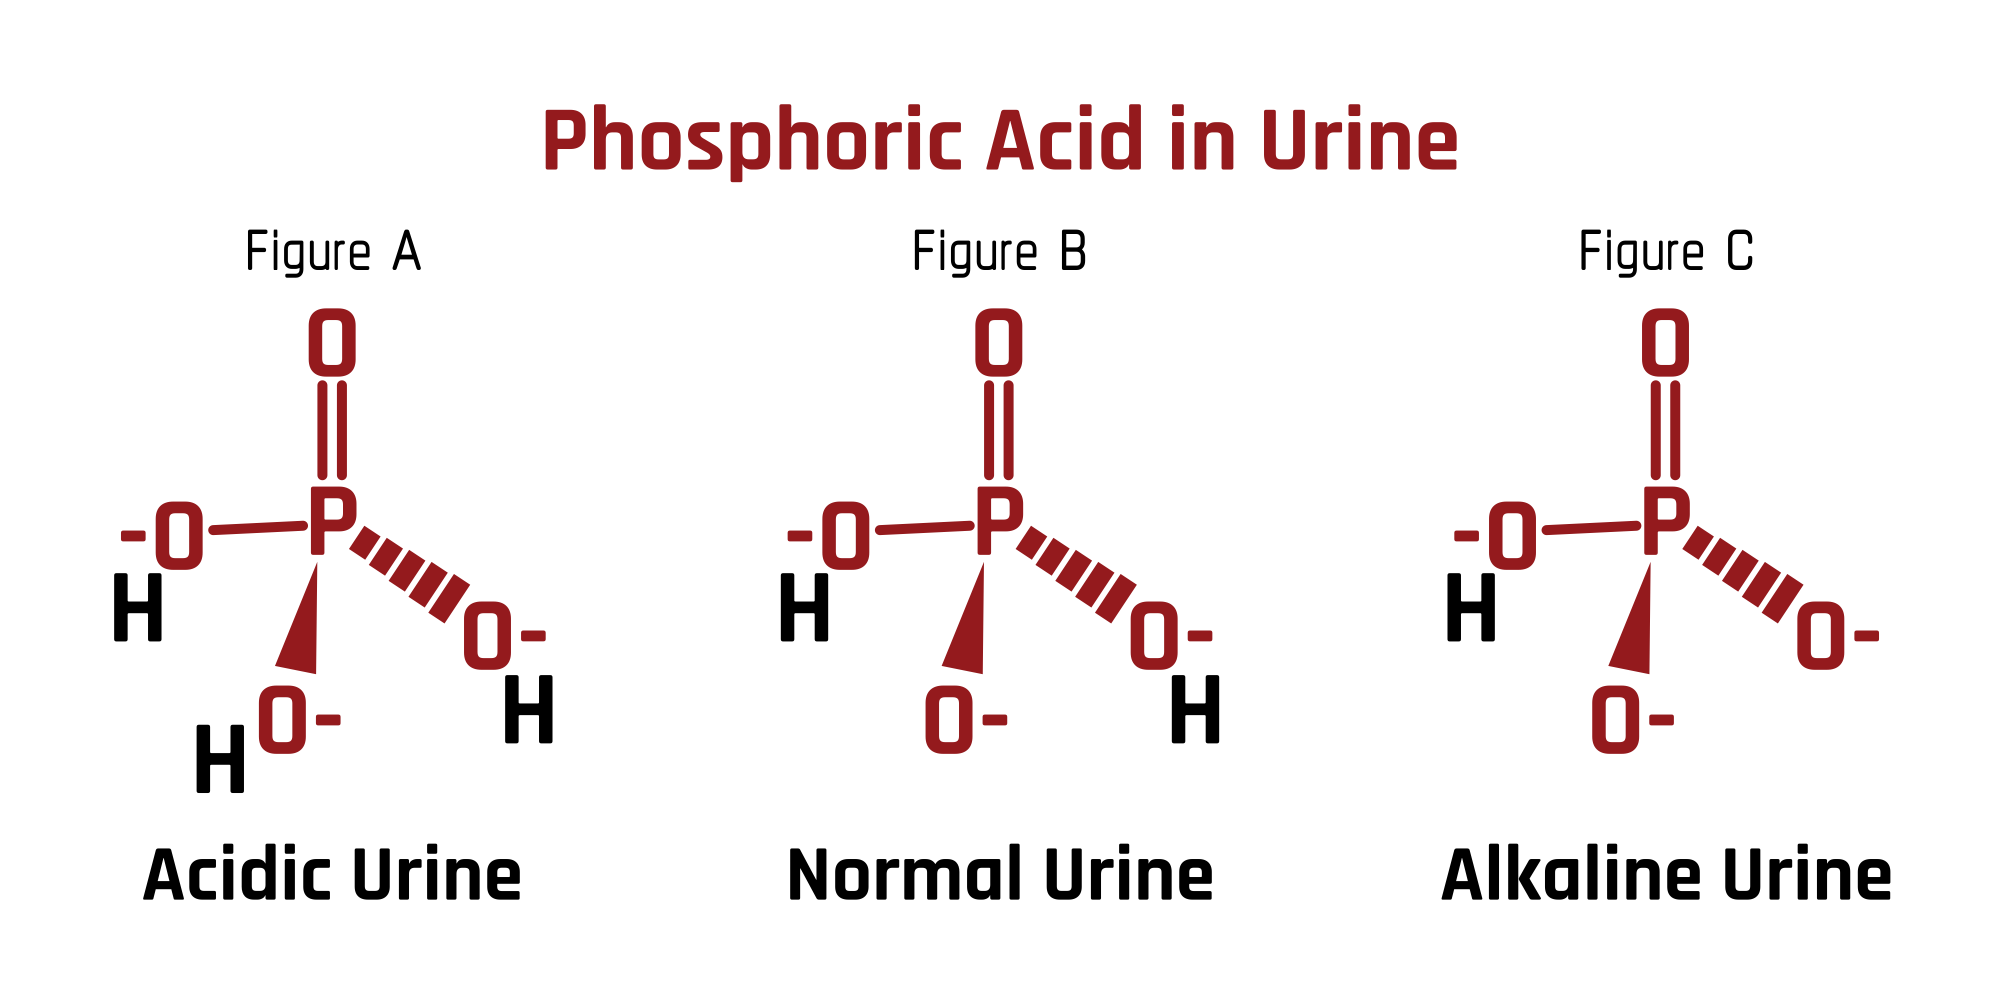 Phosphoric Acid in Urine